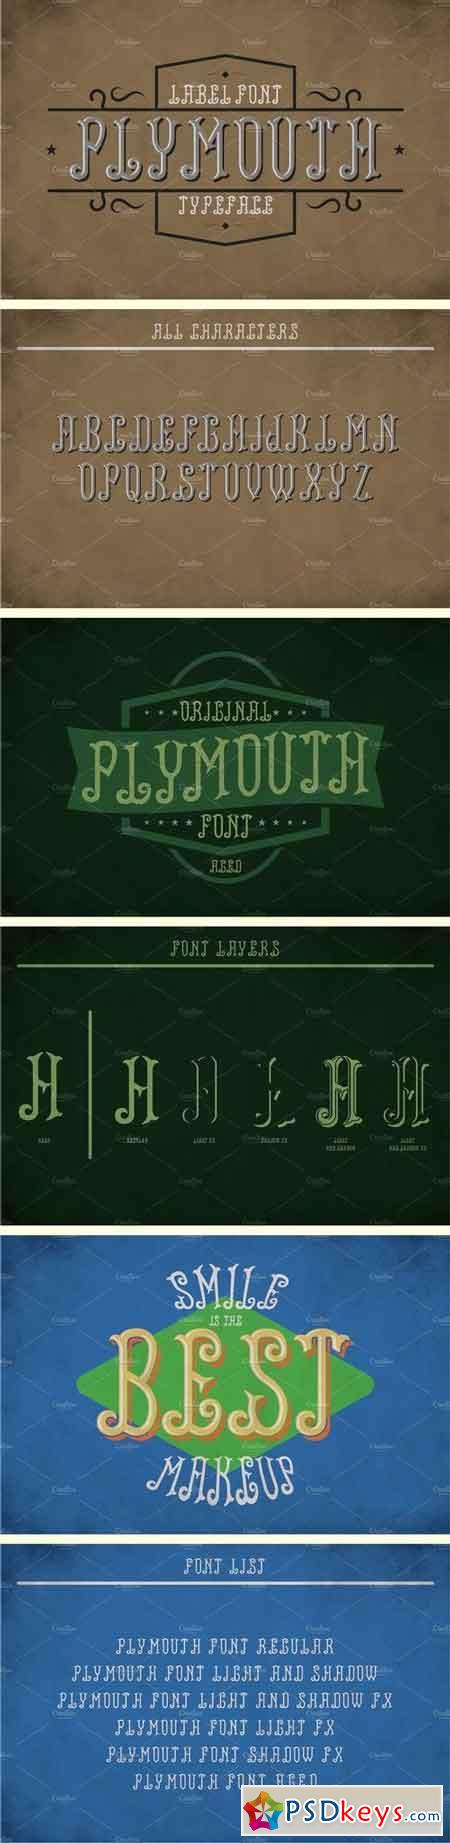 Plymouth Vintage Label Typeface 1811950